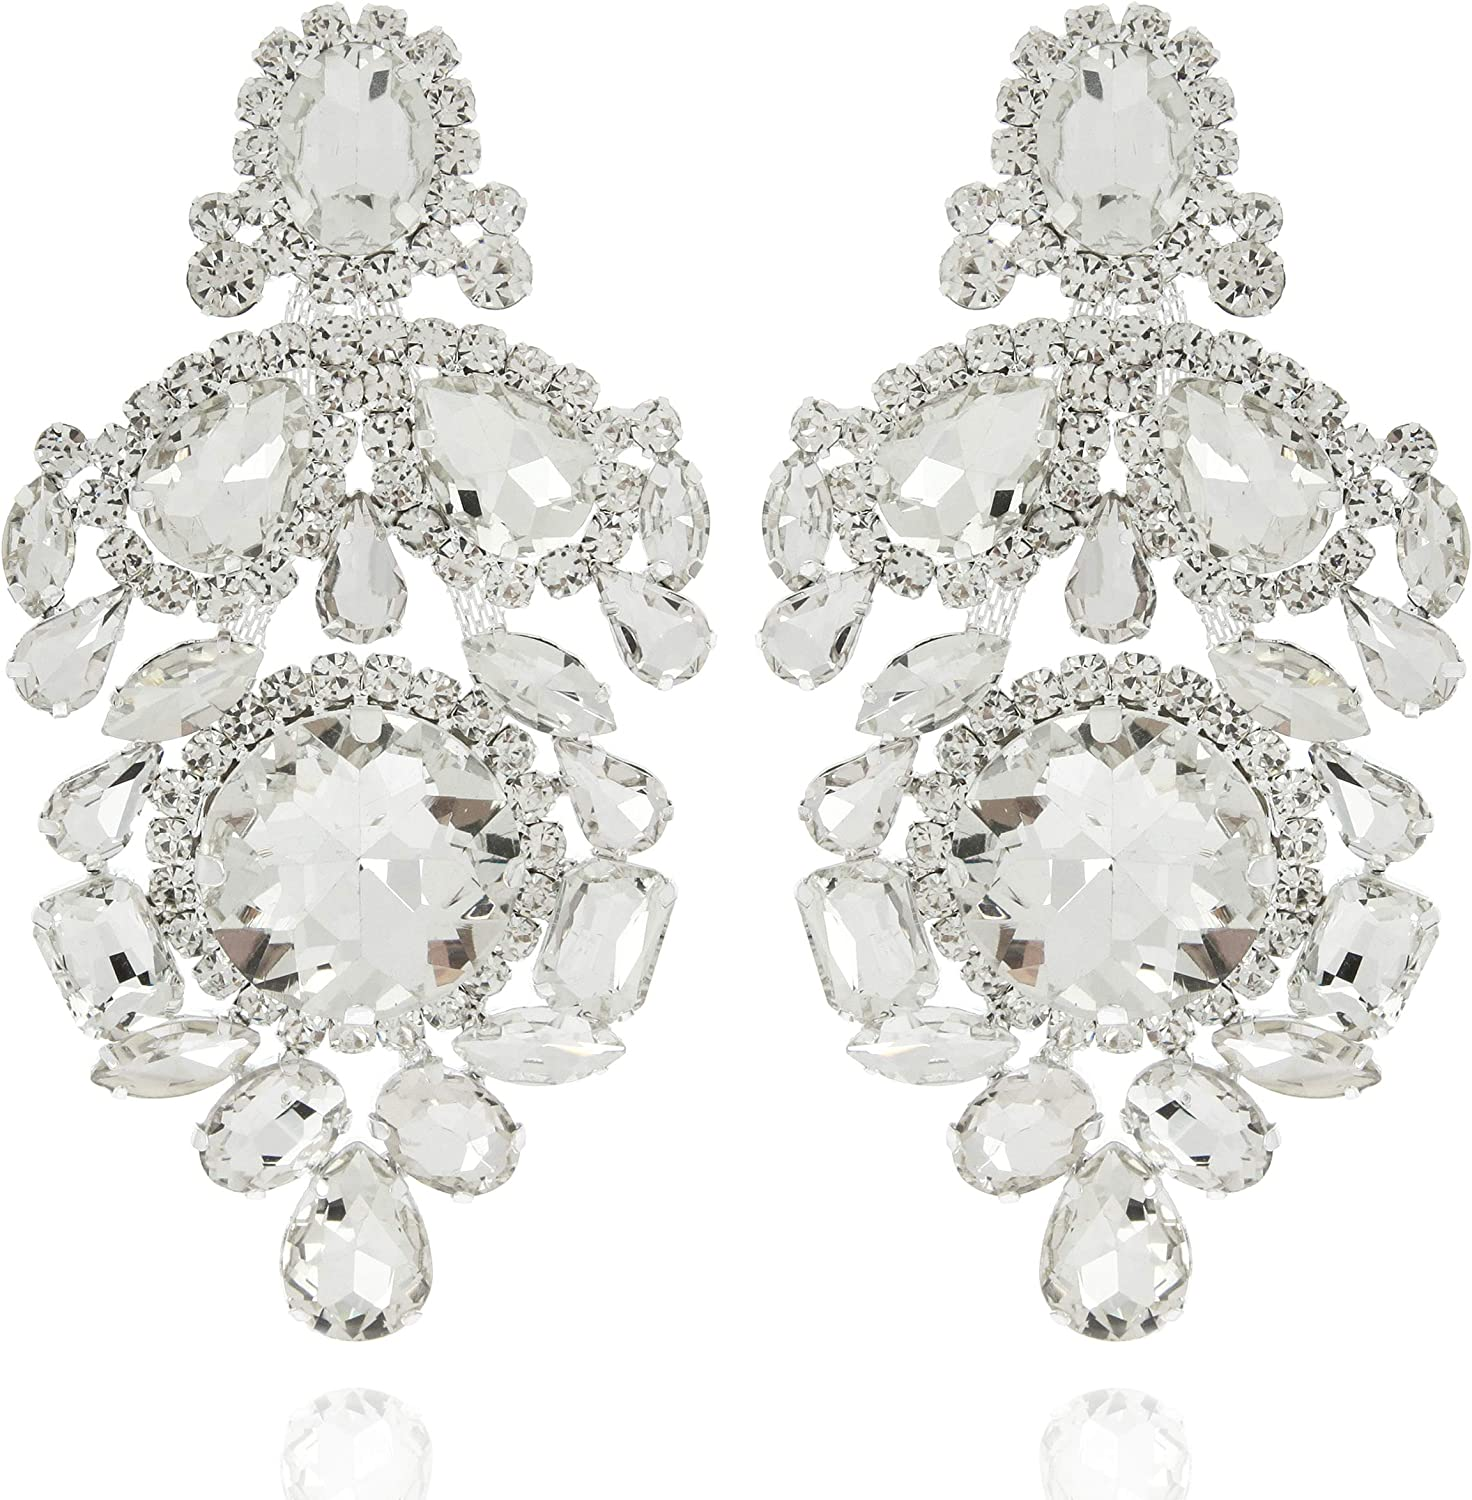 SP SOPHIA COLLECTION Women's Sparkling Statement Tiered Austrian Crystal Victorian Inspired Clip On Earrings